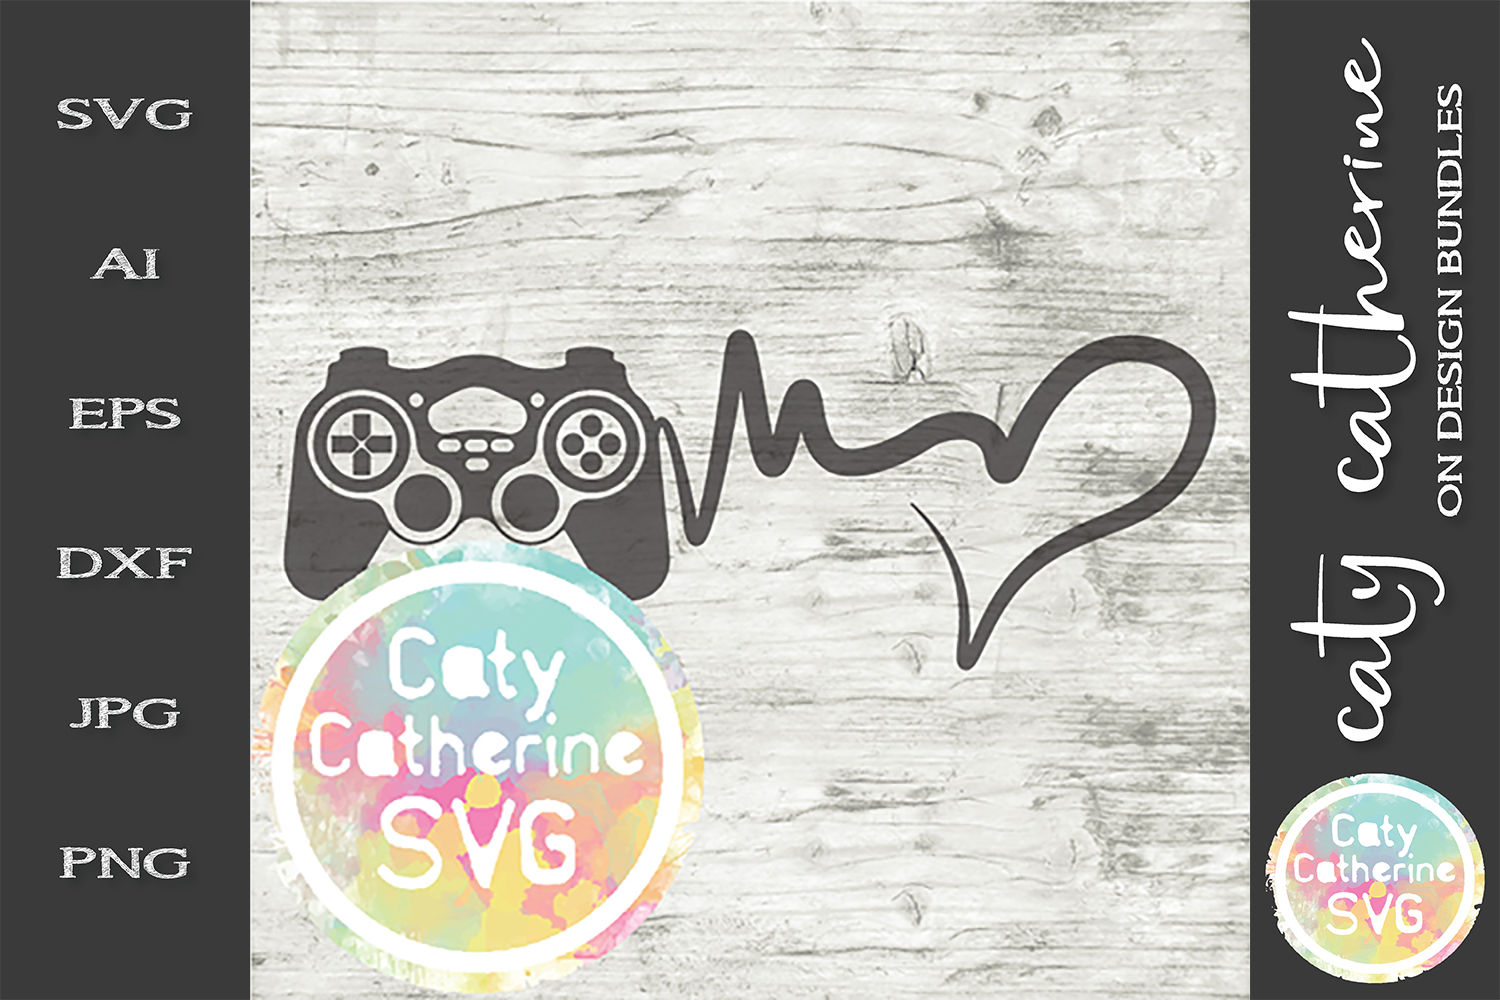 Heartbeat Love Heart Gaming SVG Cut File example image 1